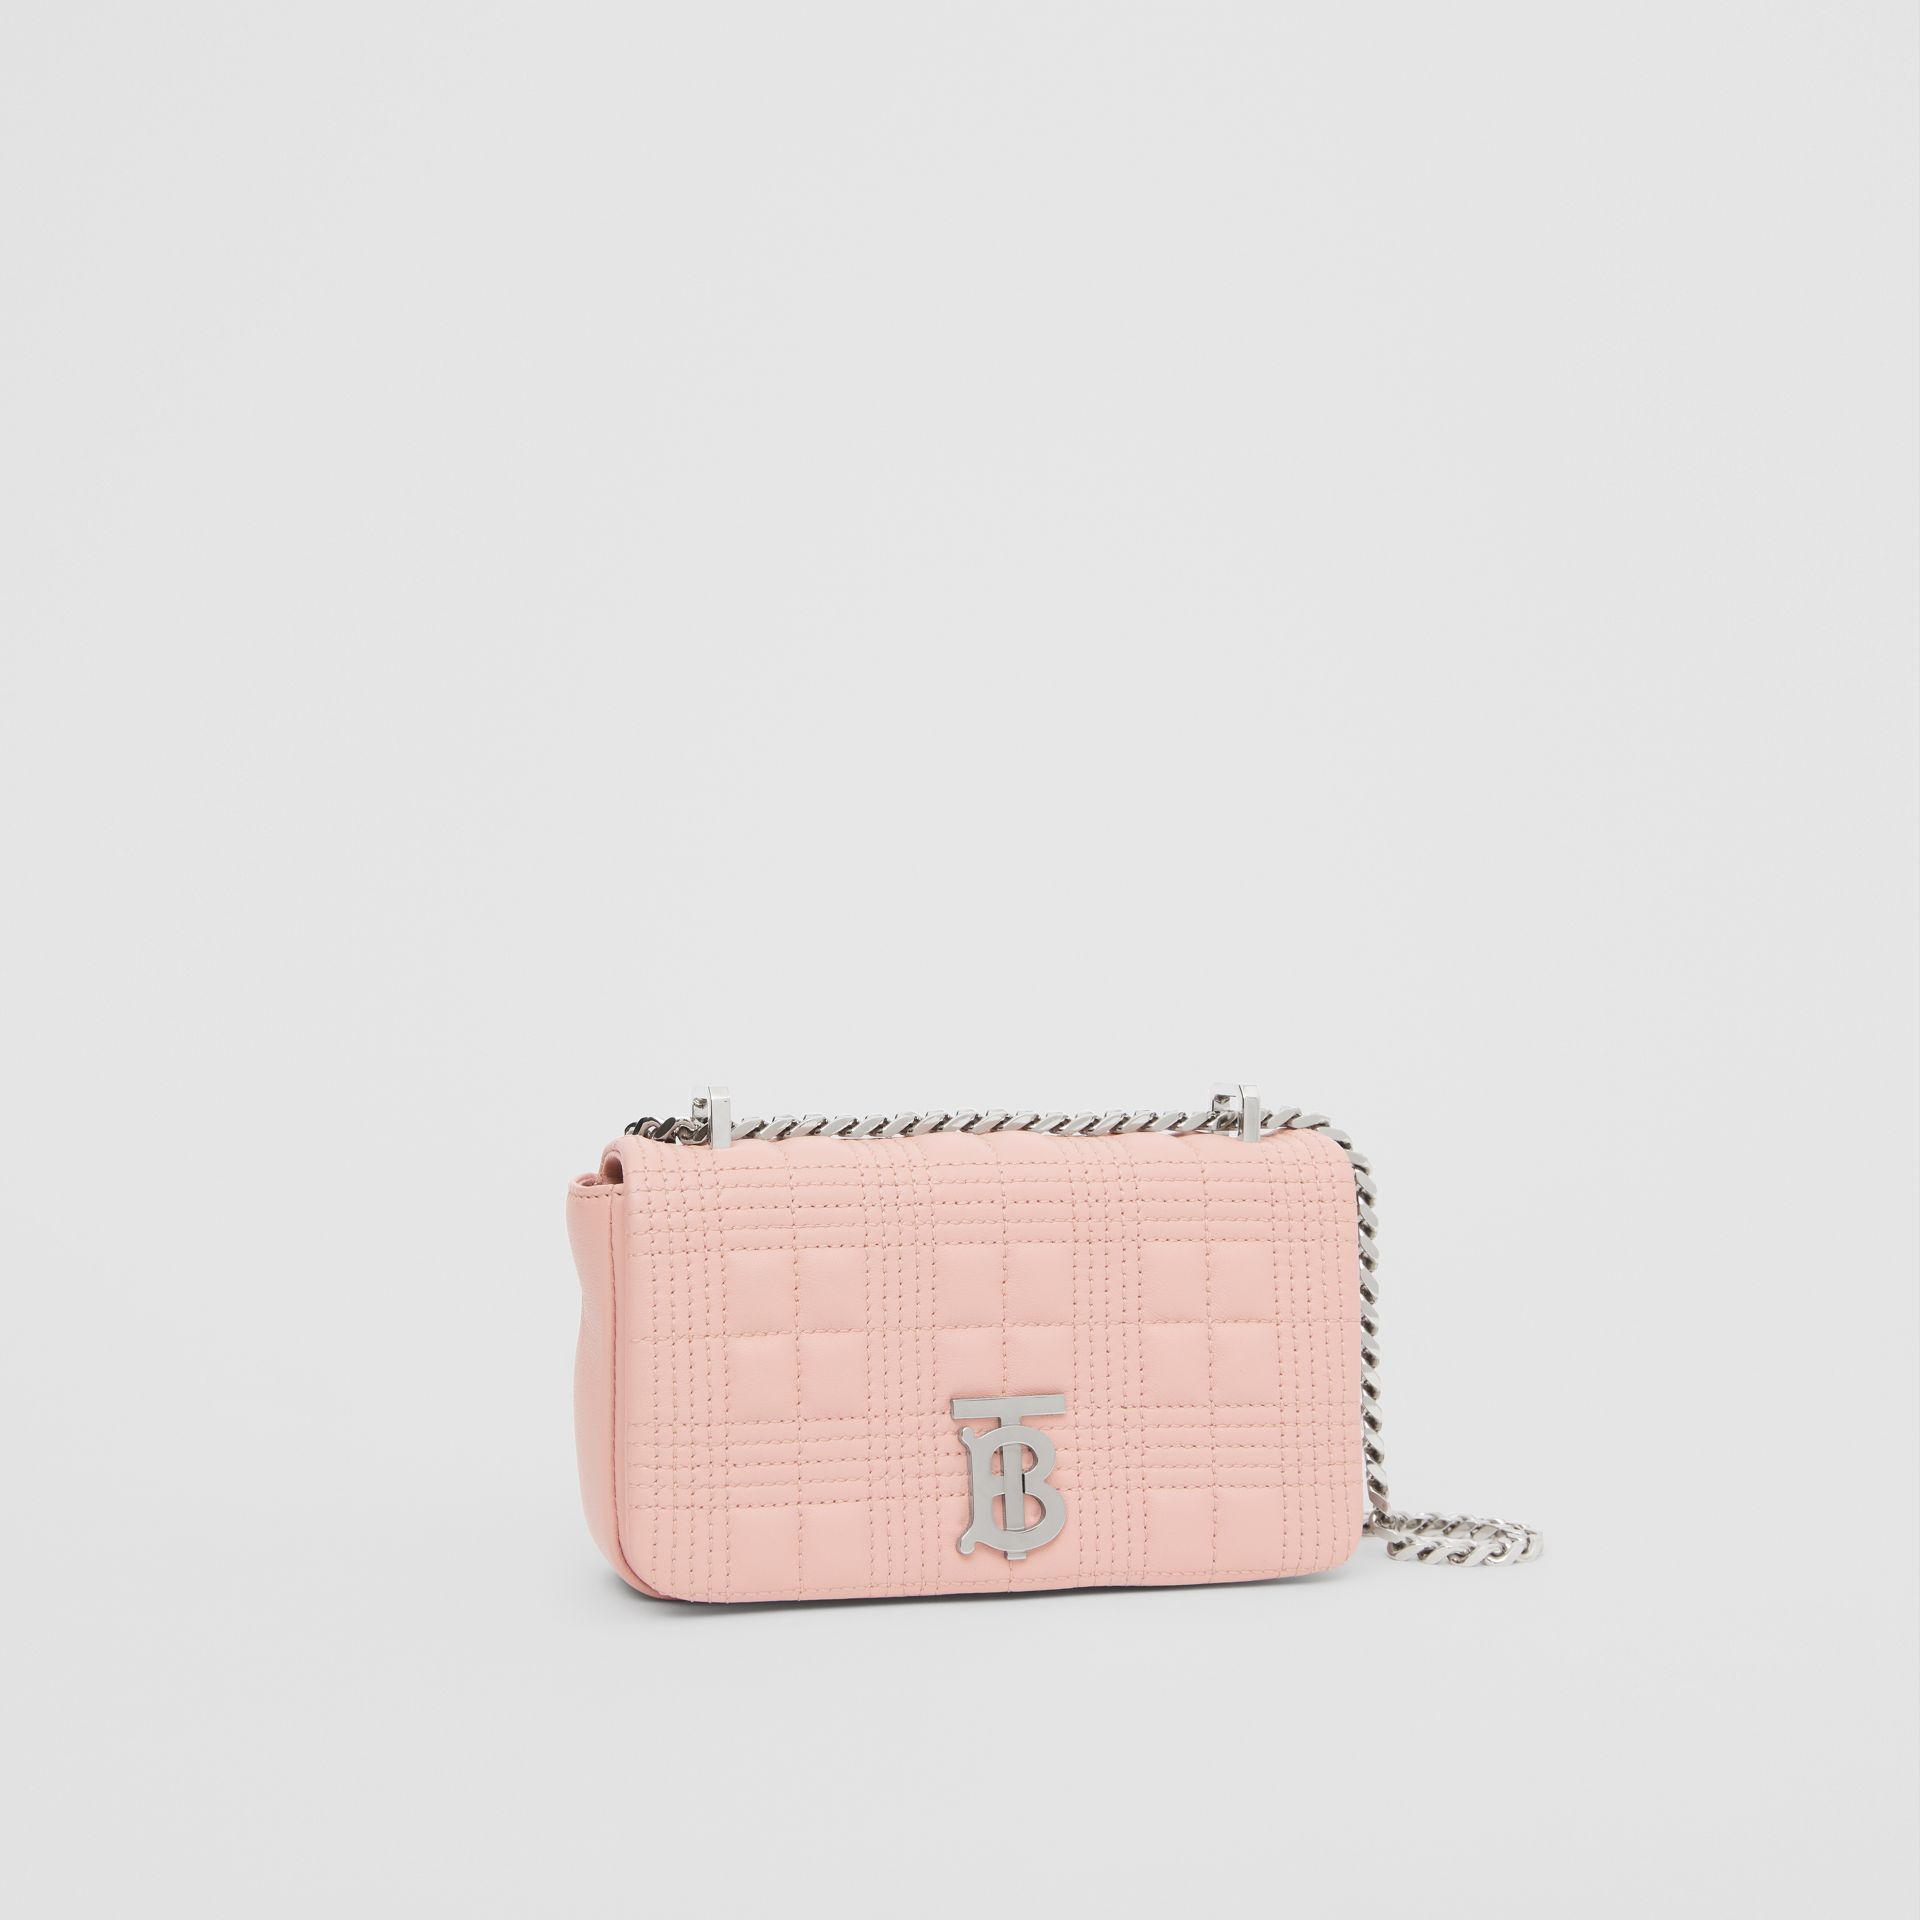 Mini Quilted Lambskin Lola Bag in Blush Pink - Women | Burberry - gallery image 6